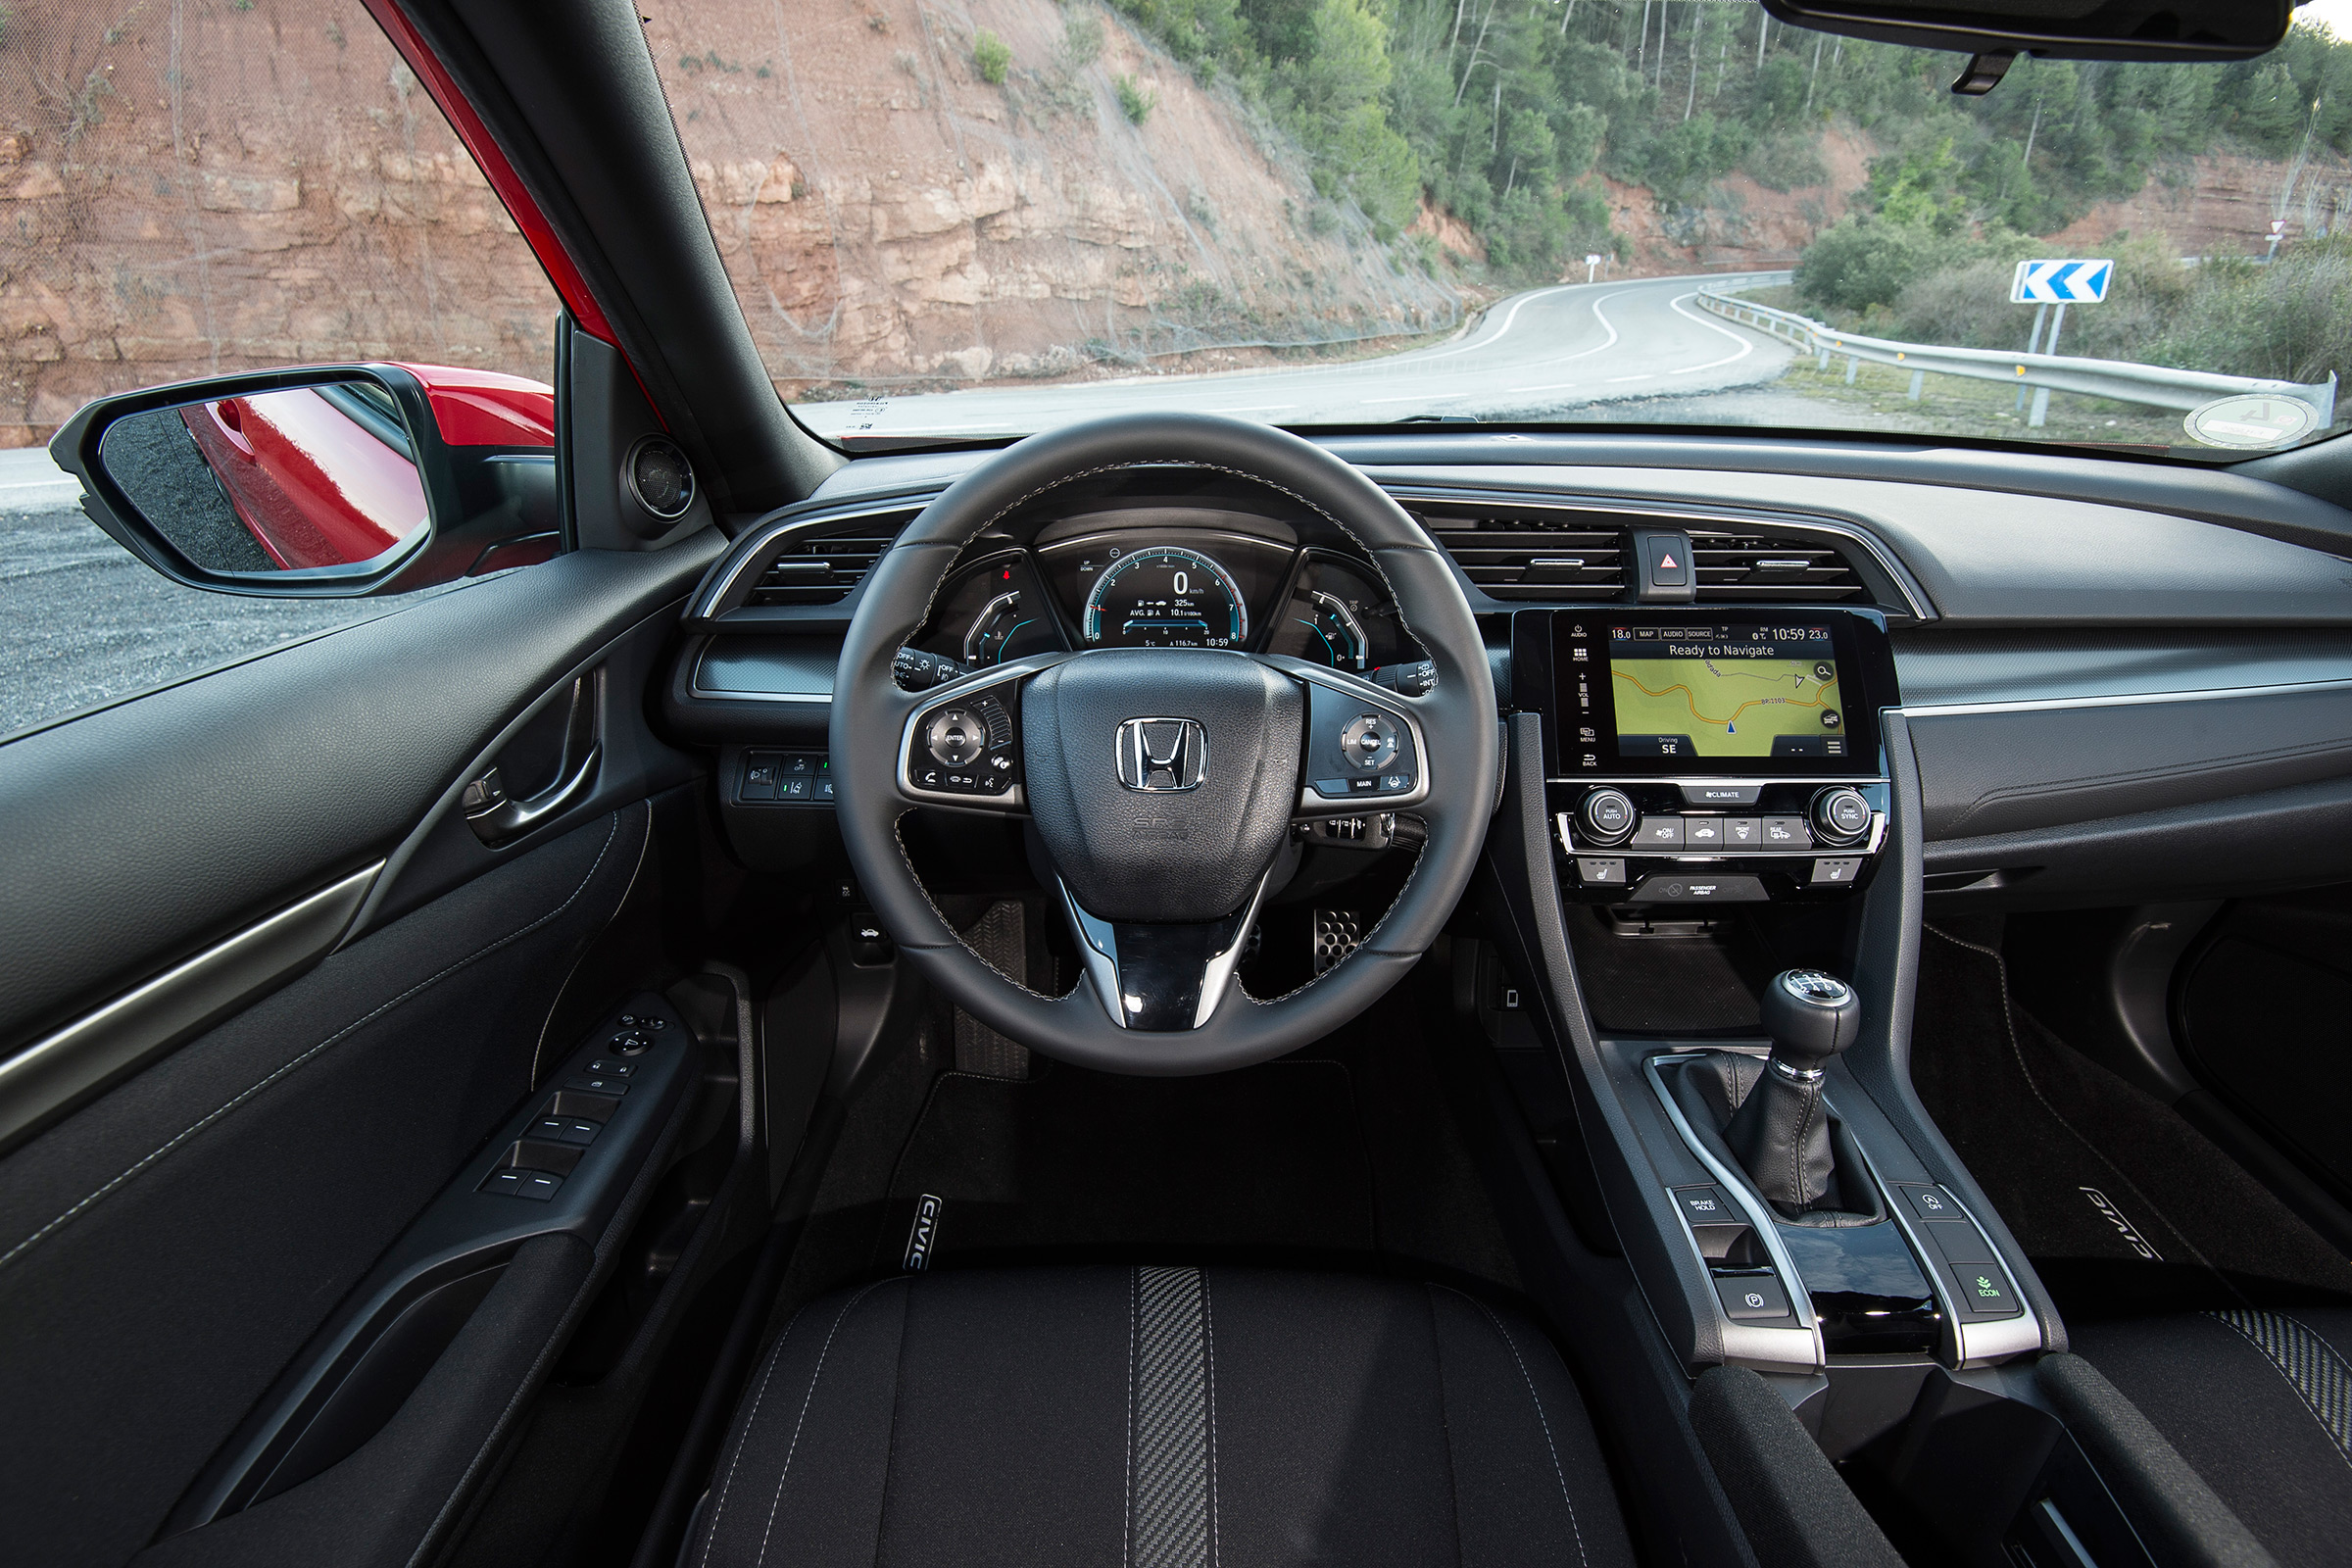 2017 Honda Civic Hatchback Interior Driver Cockpit And Dash (View 31 of 34)